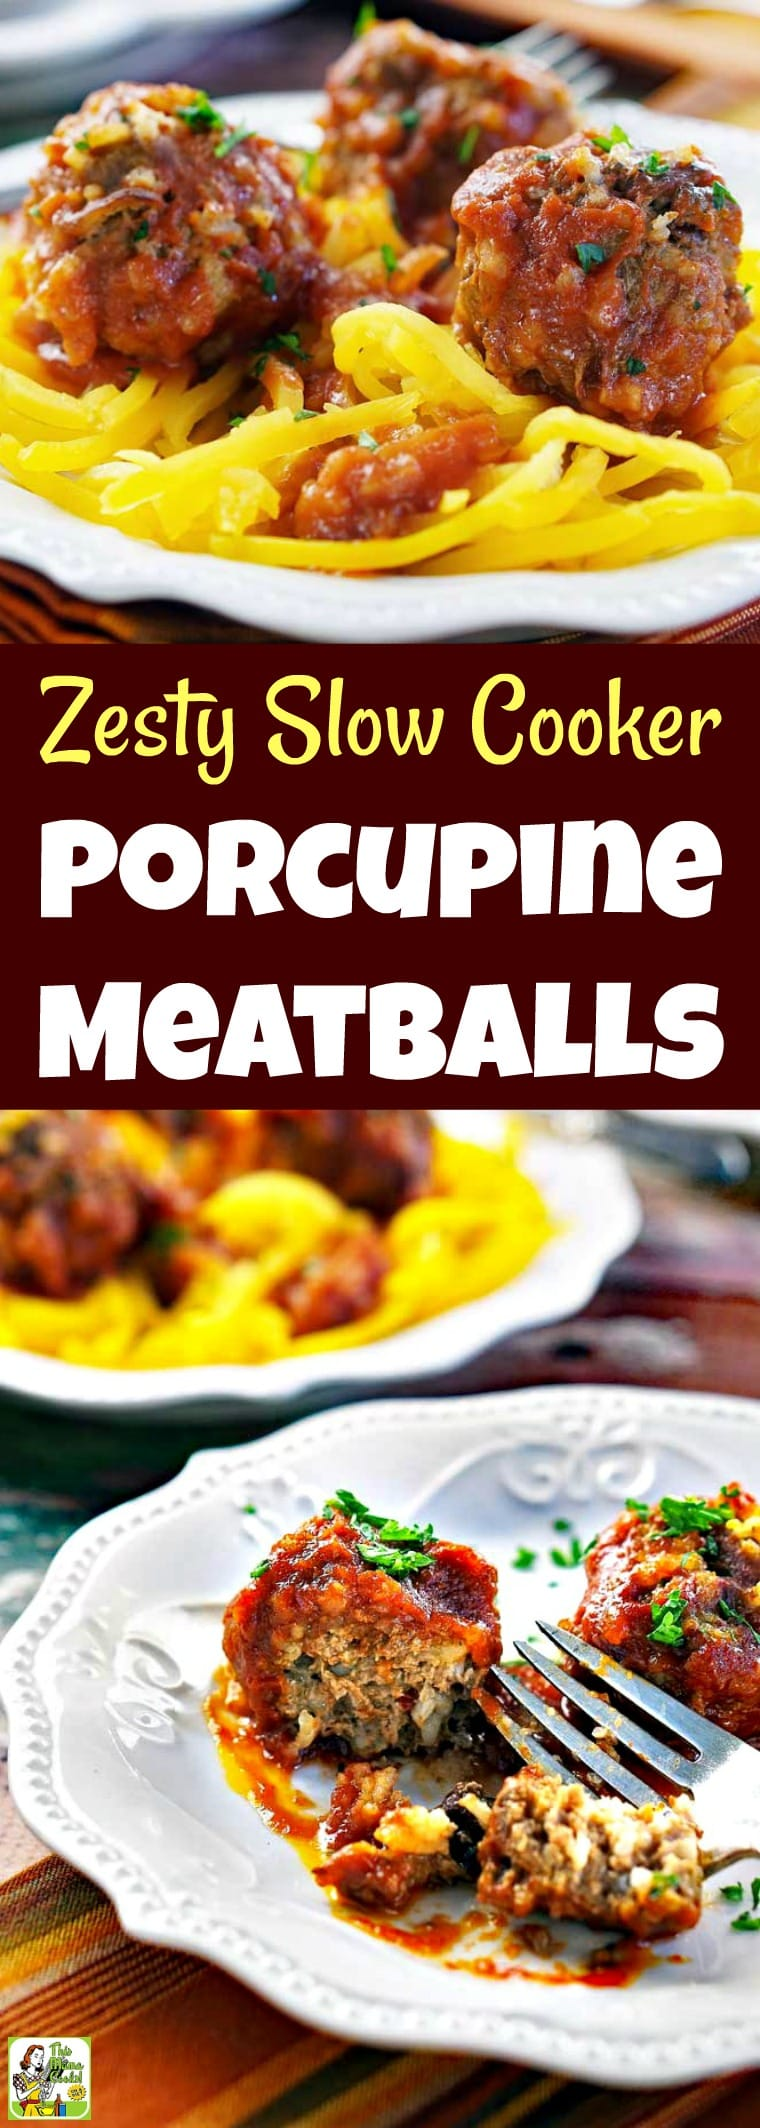 Love Porcupine Meatballs? Then you\'ll love this Zesty Slow Cooker Porcupine Meatballs recipe. Double the porcupine balls recipe, defrost overnight, and cook up in your crock-pot for an easy dinner! These Cajun flavored meatballs are gluten free and made with ground beef. #recipe #easy #recipeoftheday #healthyrecipes #glutenfree #easyrecipes #dinner #easydinner #slowcooker #crockpot #meatballs #groundbeef #comfortfood